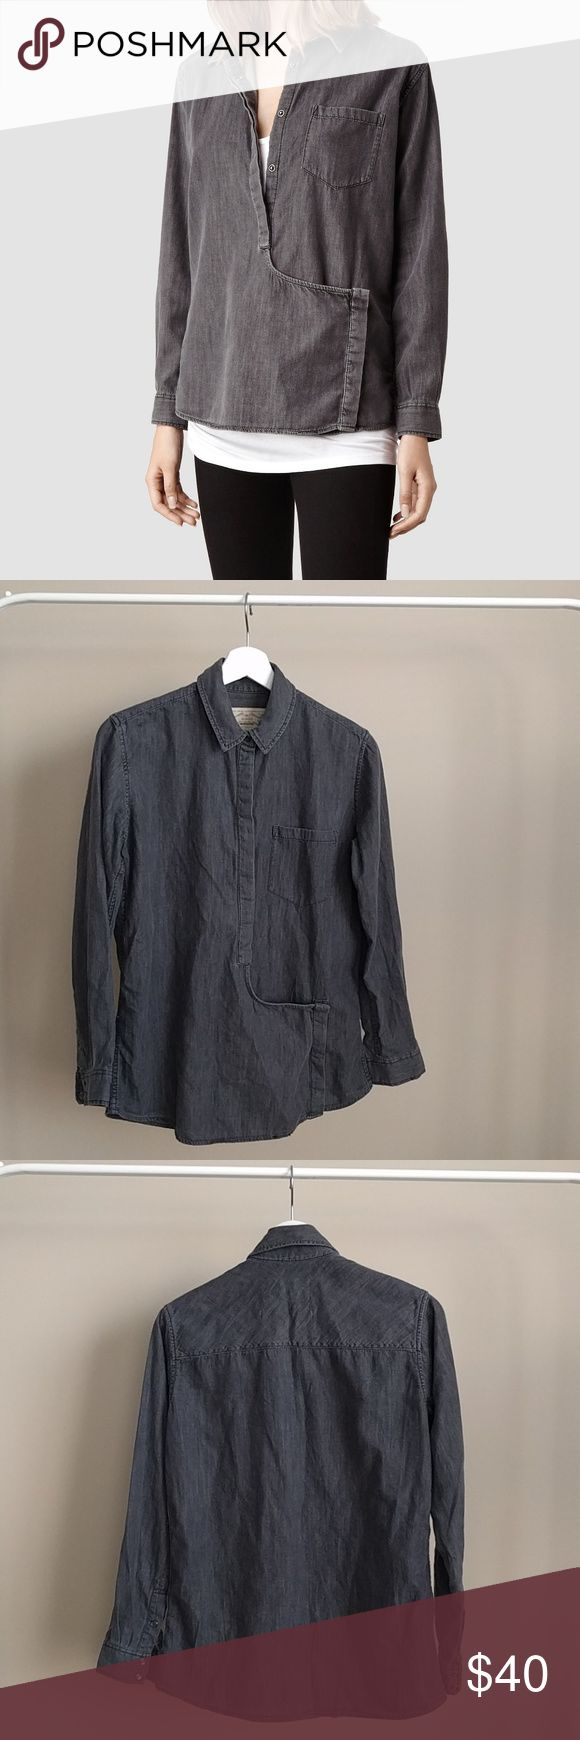 AllSaints // Route Shirt // US 4 AllSaints Route button up shirt  Grey Size US 4 // UK 8 Denim shirt  Pocket in front AllSaints Tops